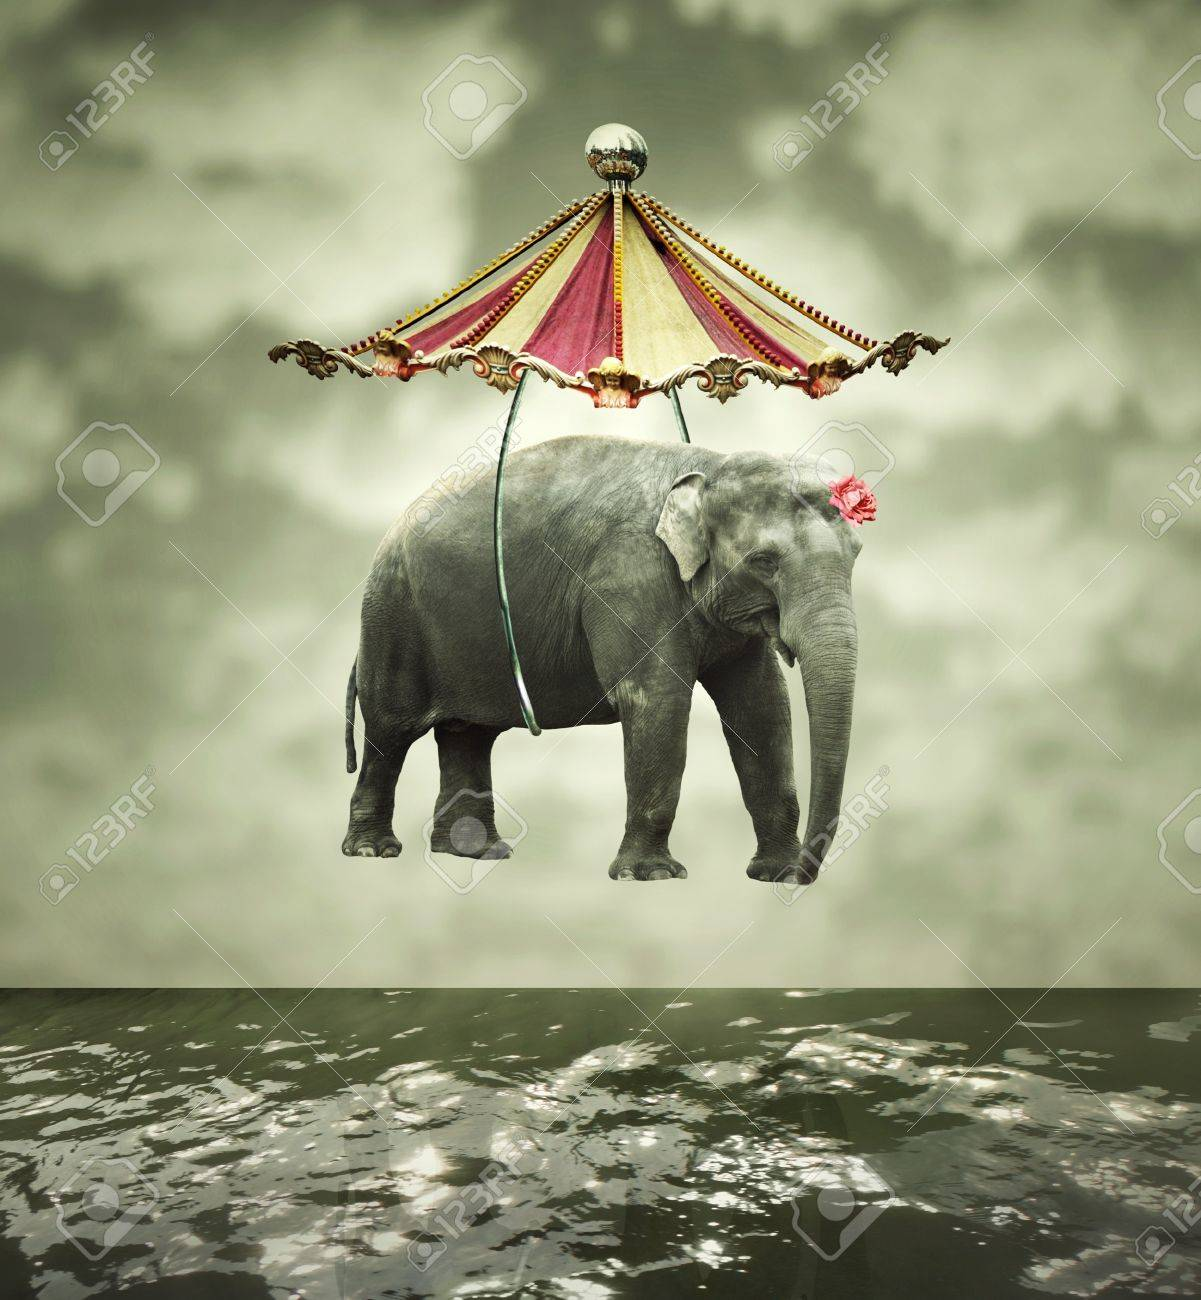 Fanciful and artistic image that represent a flying elephant with circus tent above the water - 17452945